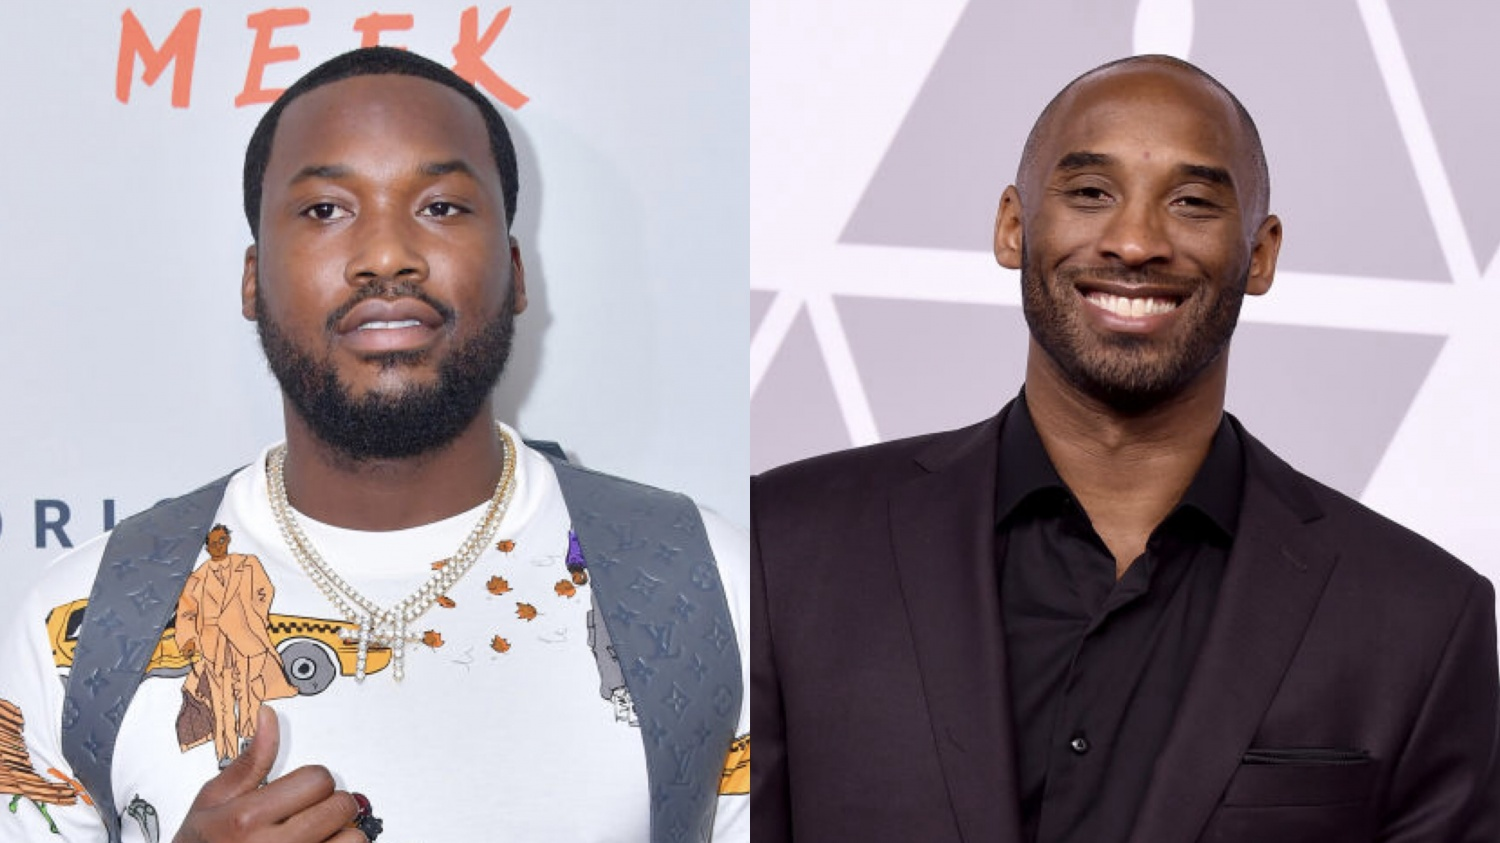 Meek Mill references Kobe Bryant in new song